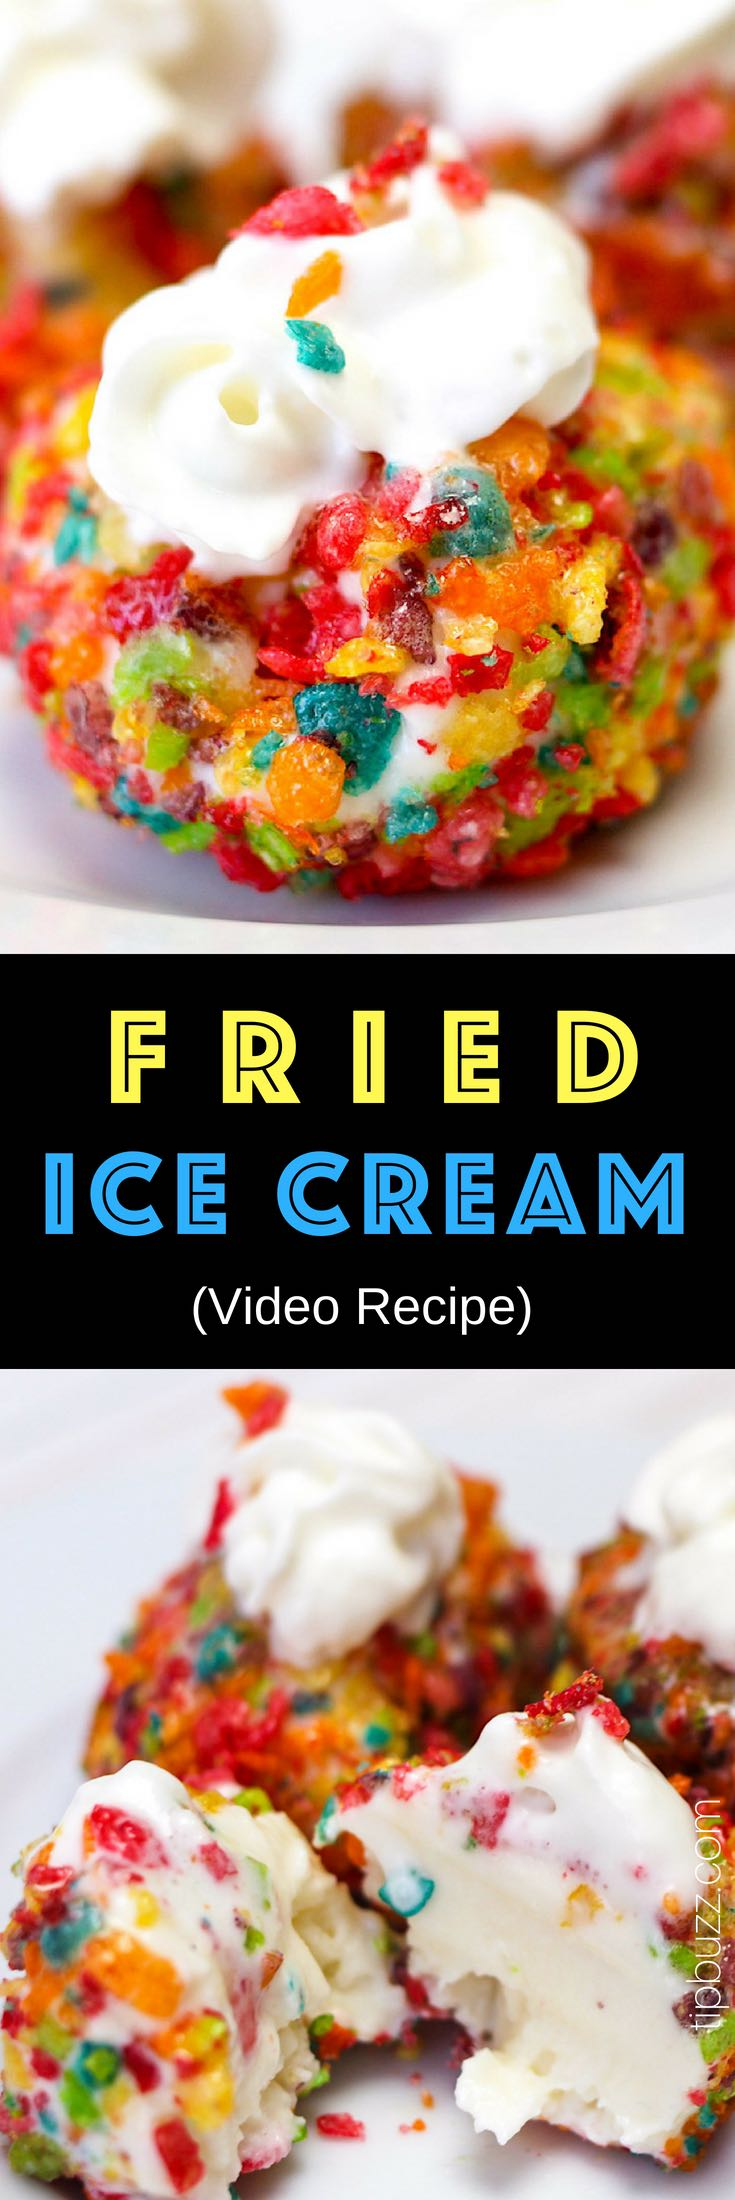 The most incredible Fried Ice Cream Dessert With Fruity Pebbles: Frozen and creamy ice cream is coved by hot, deep fried and crunchy fruity pebble cereal! Fun homemade deep fried ice cream that's super easy to make. Only 3 ingredients: your favorite ice cream, fruity pebble cereal and whipped cream! 3 Ingredient recipe. Desserts. Quick and easy recipe with video tutorial.